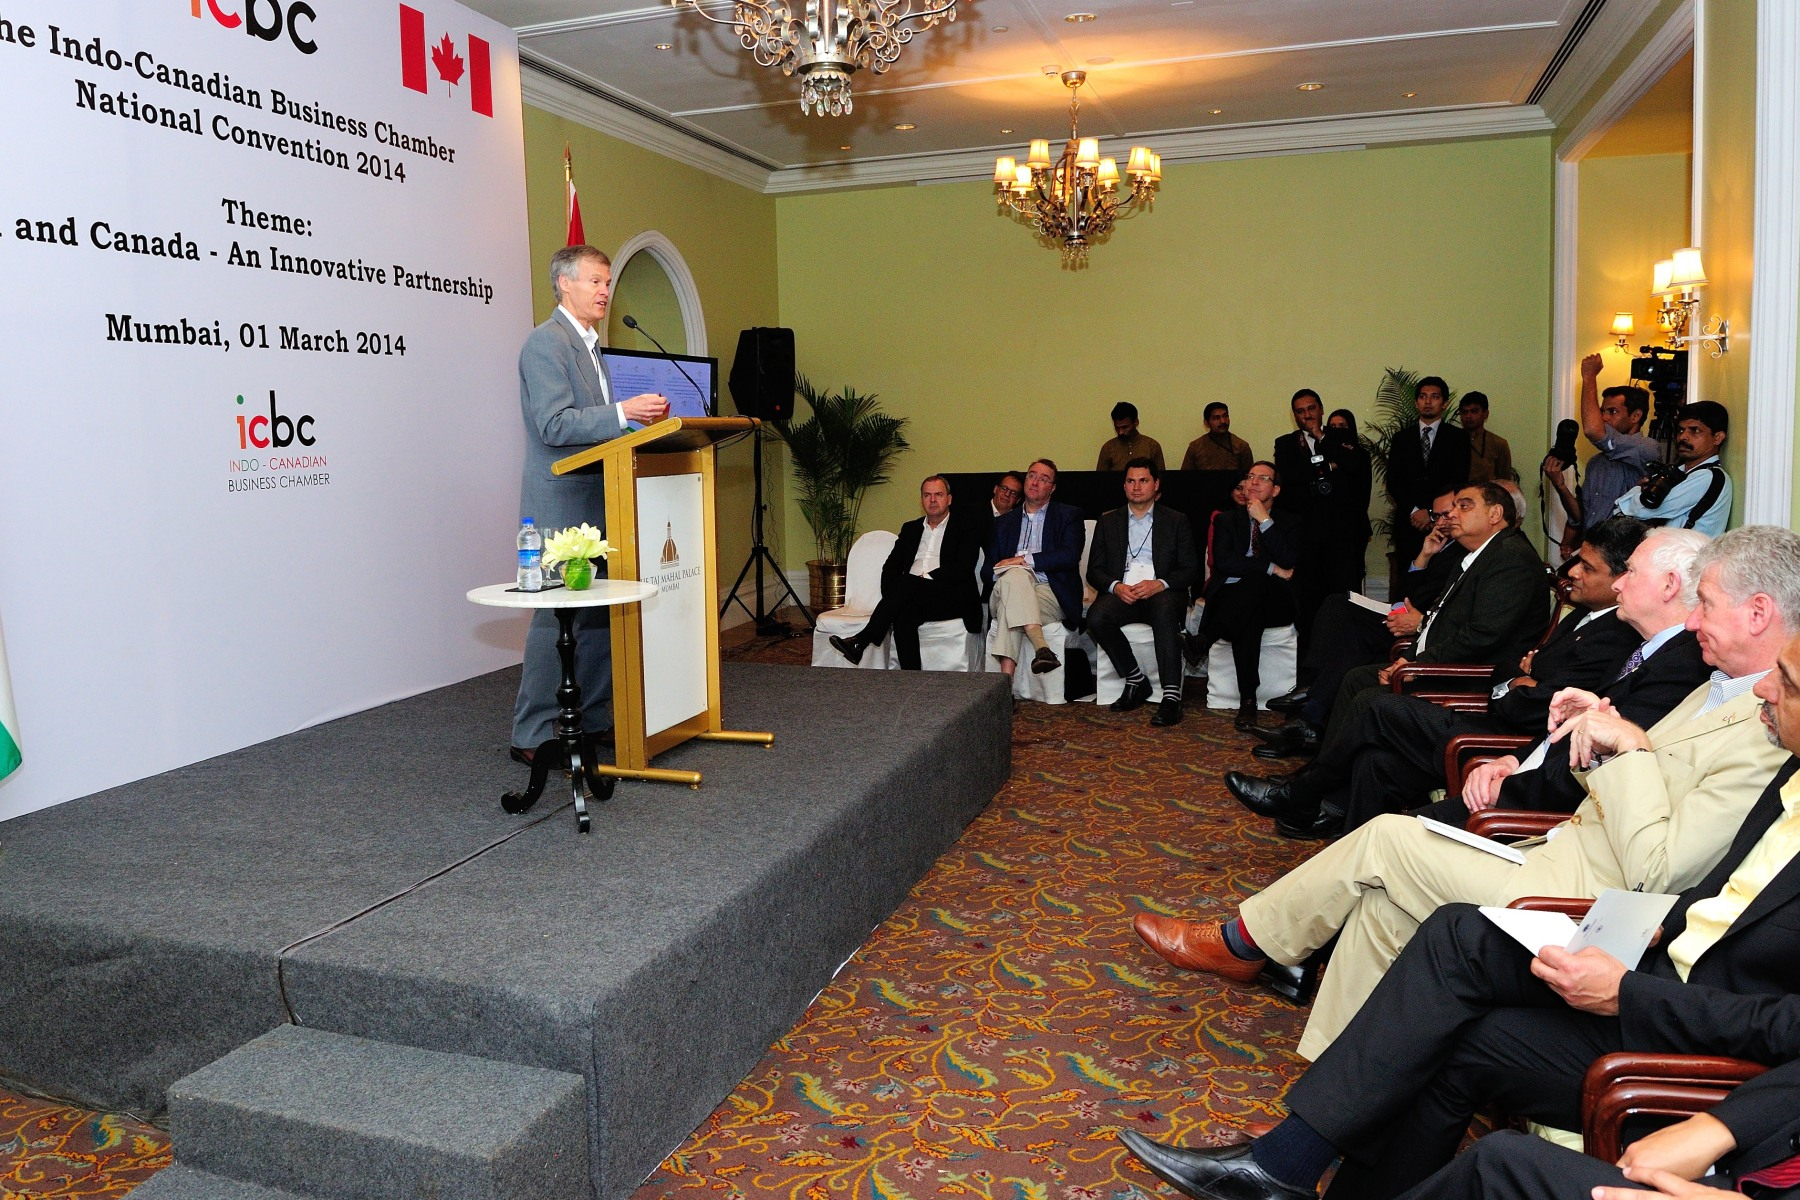 Later in the afternoon, the Governor General attended the Indo-Canadian Business Chamber (ICBC) Annual Convention. The ICBC promotes linkages with Canada across sectors and organizes monthly events to raise awareness of Canadian opportunities, innovation, companies and more. This is India's only Canada-focused business group, with a membership of over 100 corporate members across country in its four regional chapters.